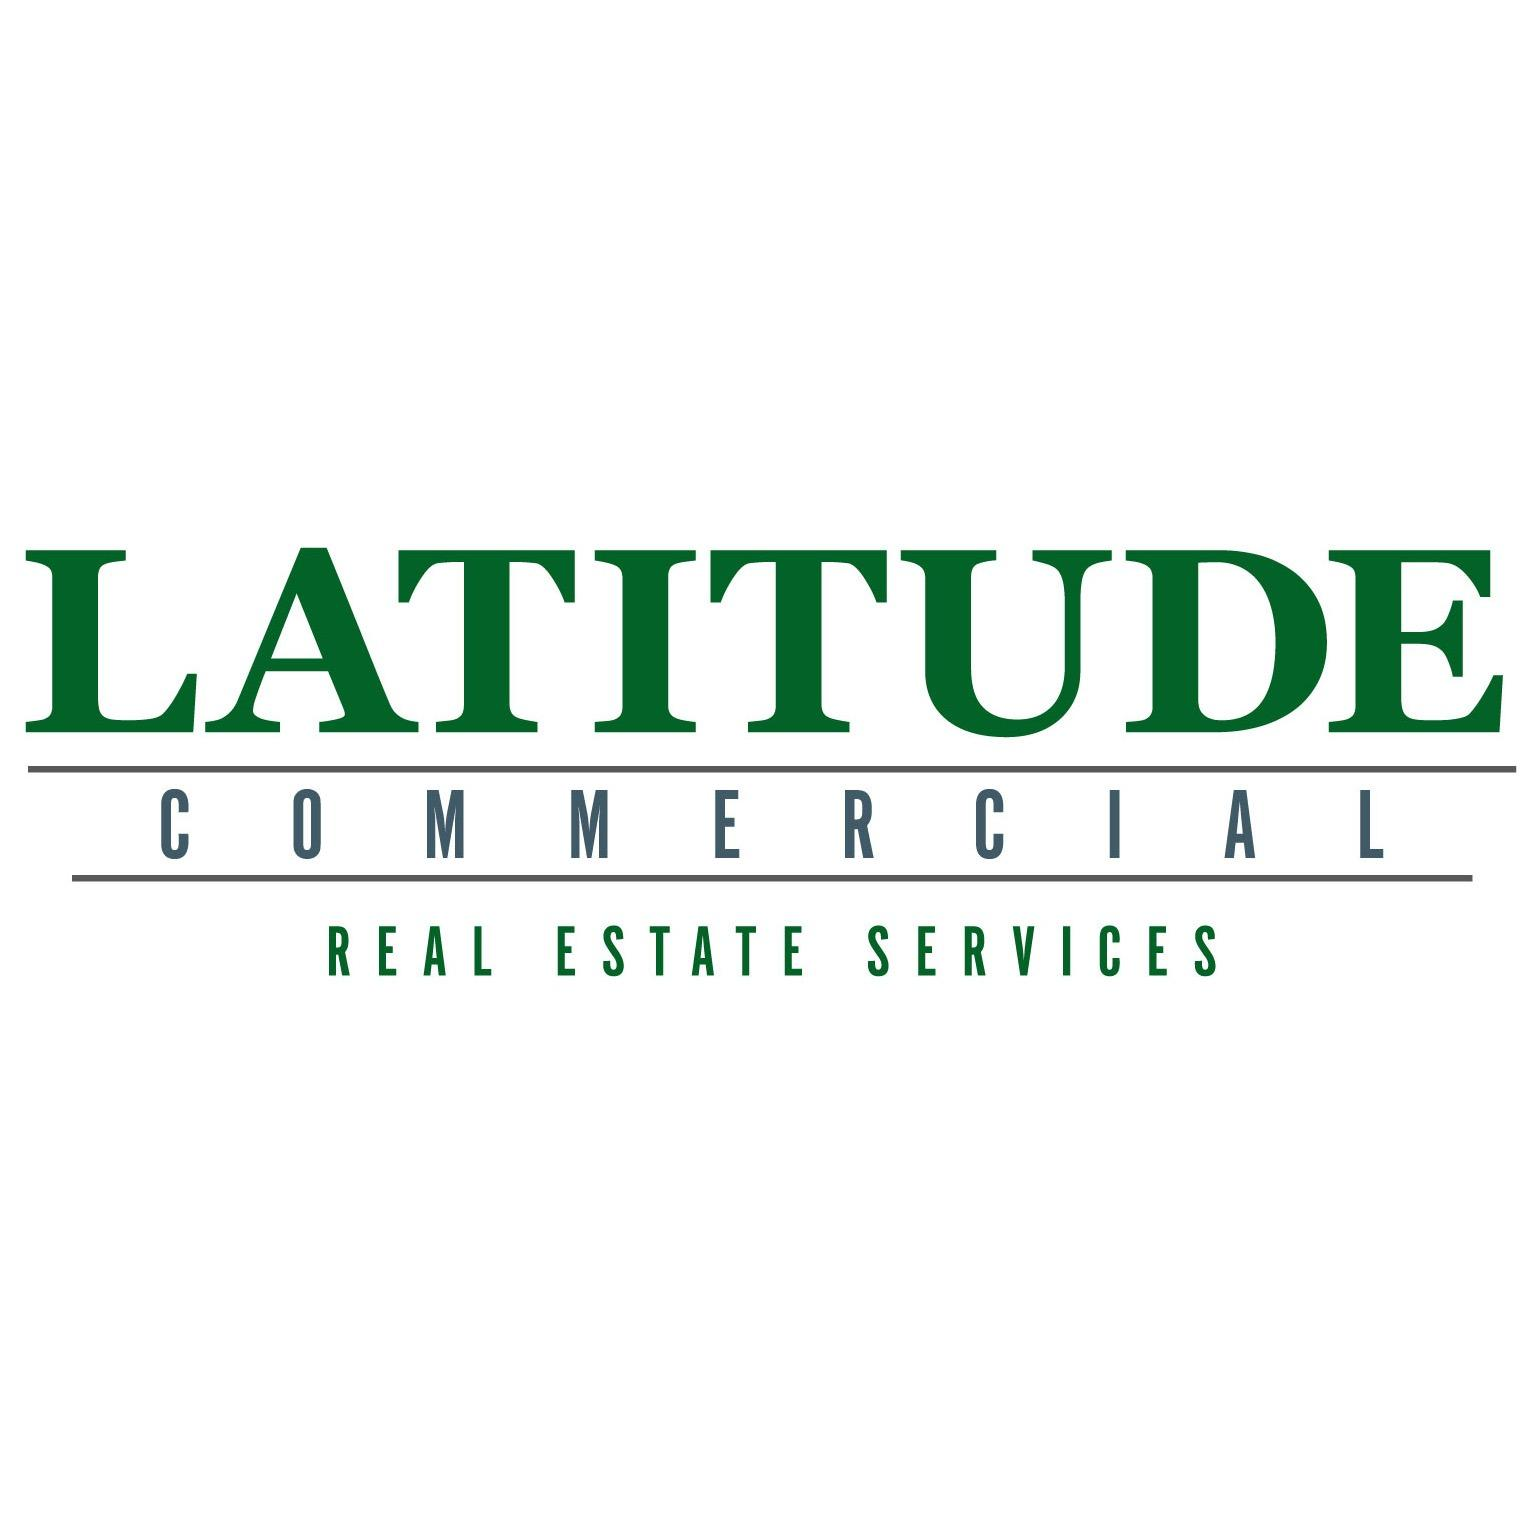 Latitude Commercial Real Estate Services